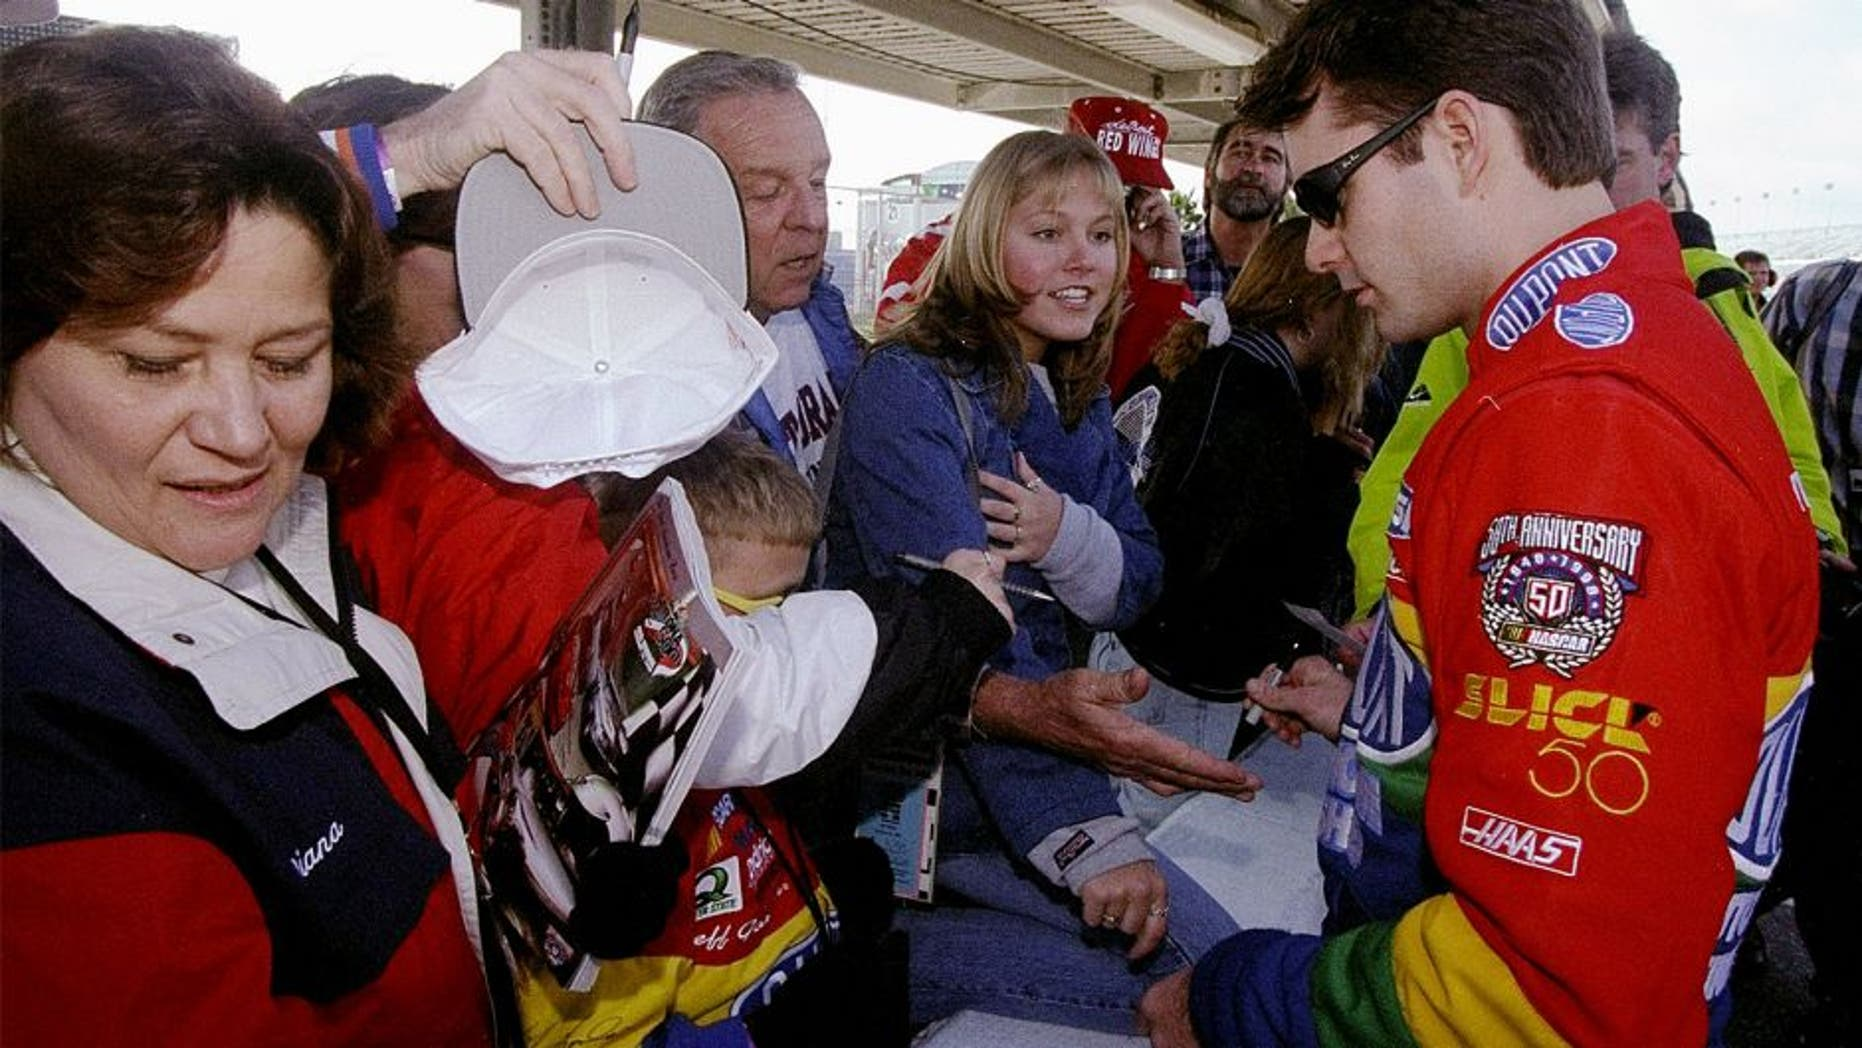 8 Feb 1998: Jeff Gordon signs autographs for fans during the Nascar Daytona 500 at the Daytona International Speedway in Daytona Beach, Florida. Mandatory Credit: David Taylor /Allsport